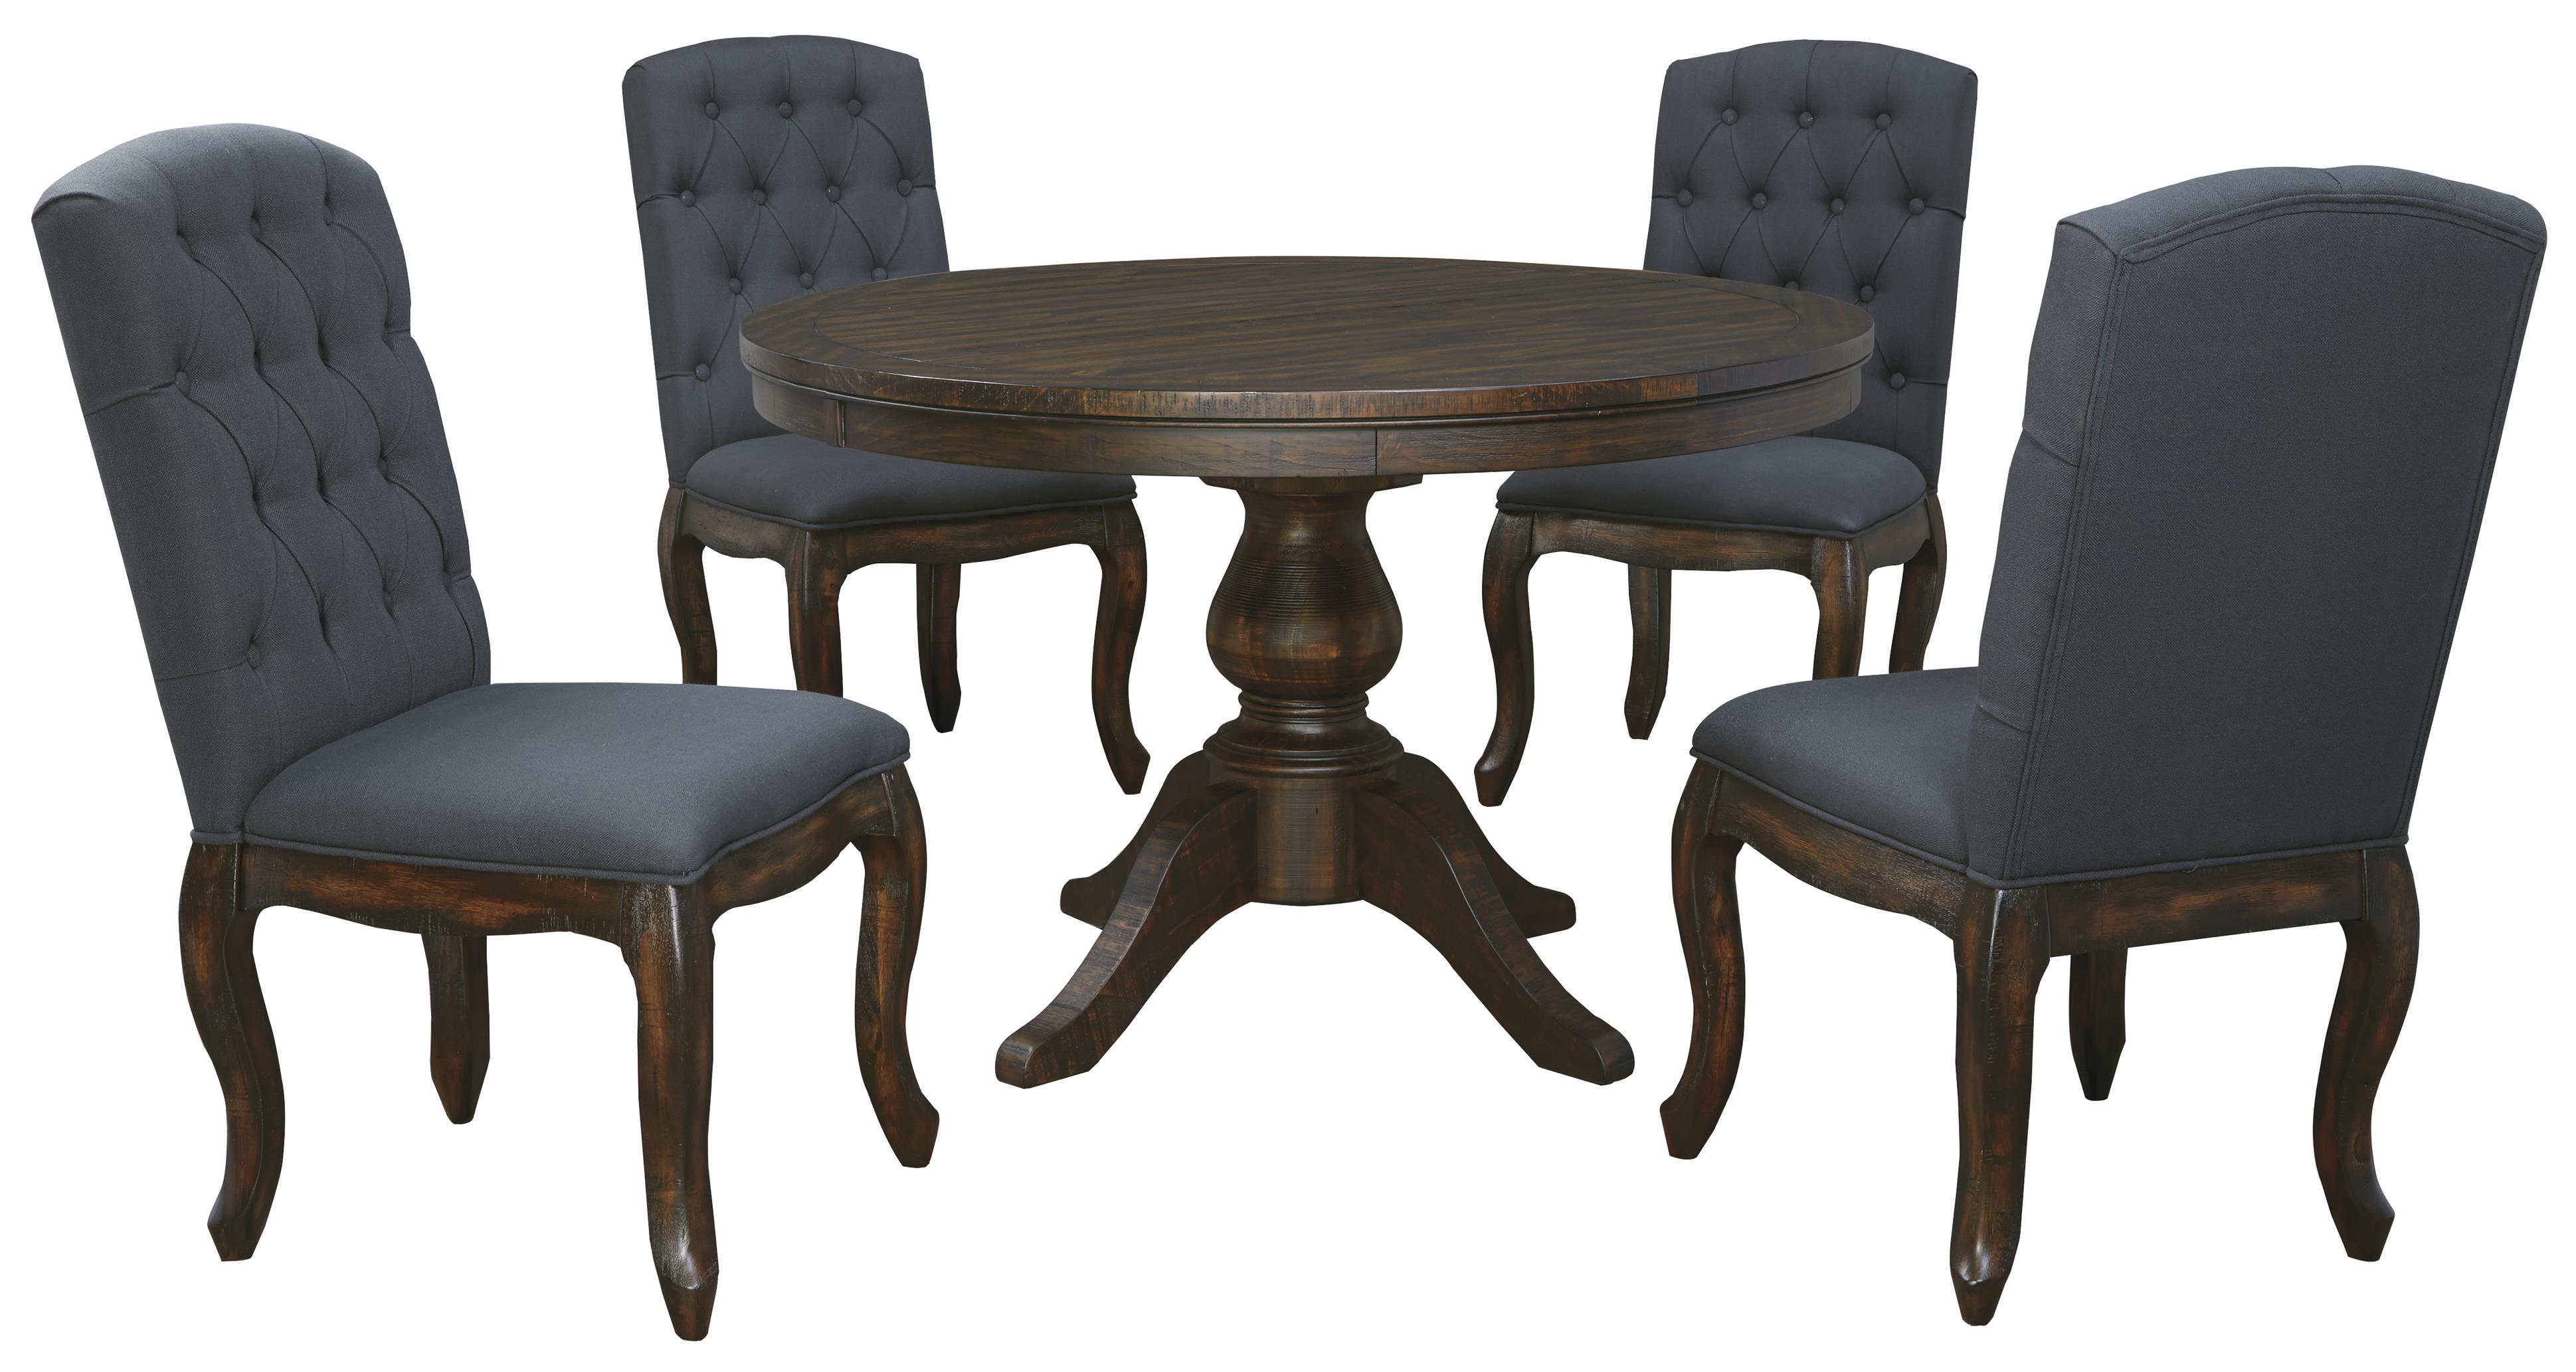 5 piece round dining table set with upholstered side chairs by signature design by ashley wolf Dining table and bench set